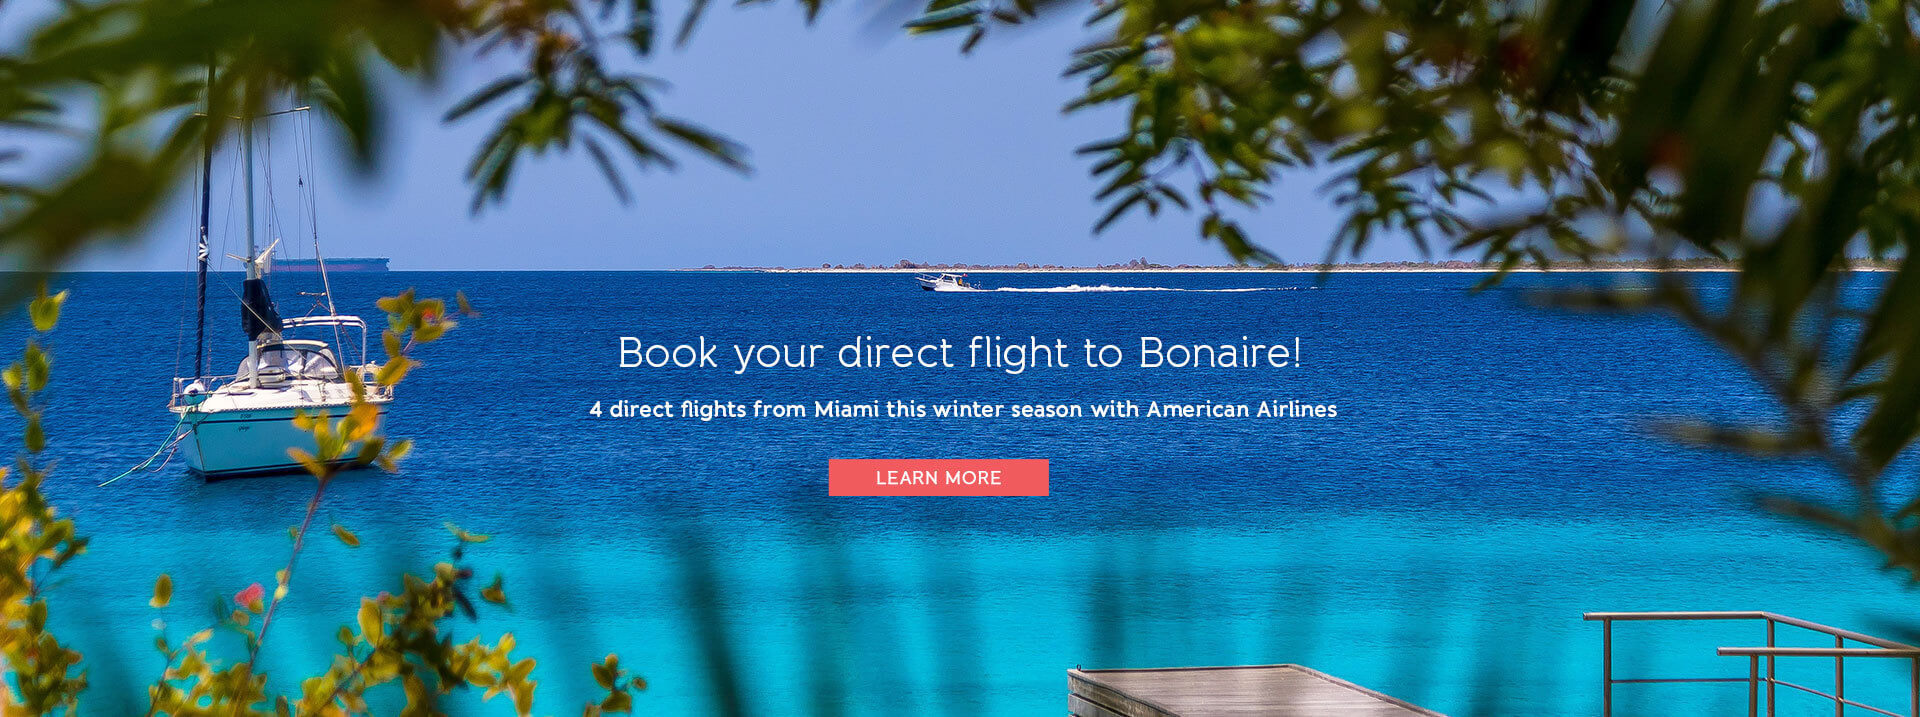 Book your direct flight to Bonaire! 4 direct flights from Miami this winter season with American Airlines. Learn More